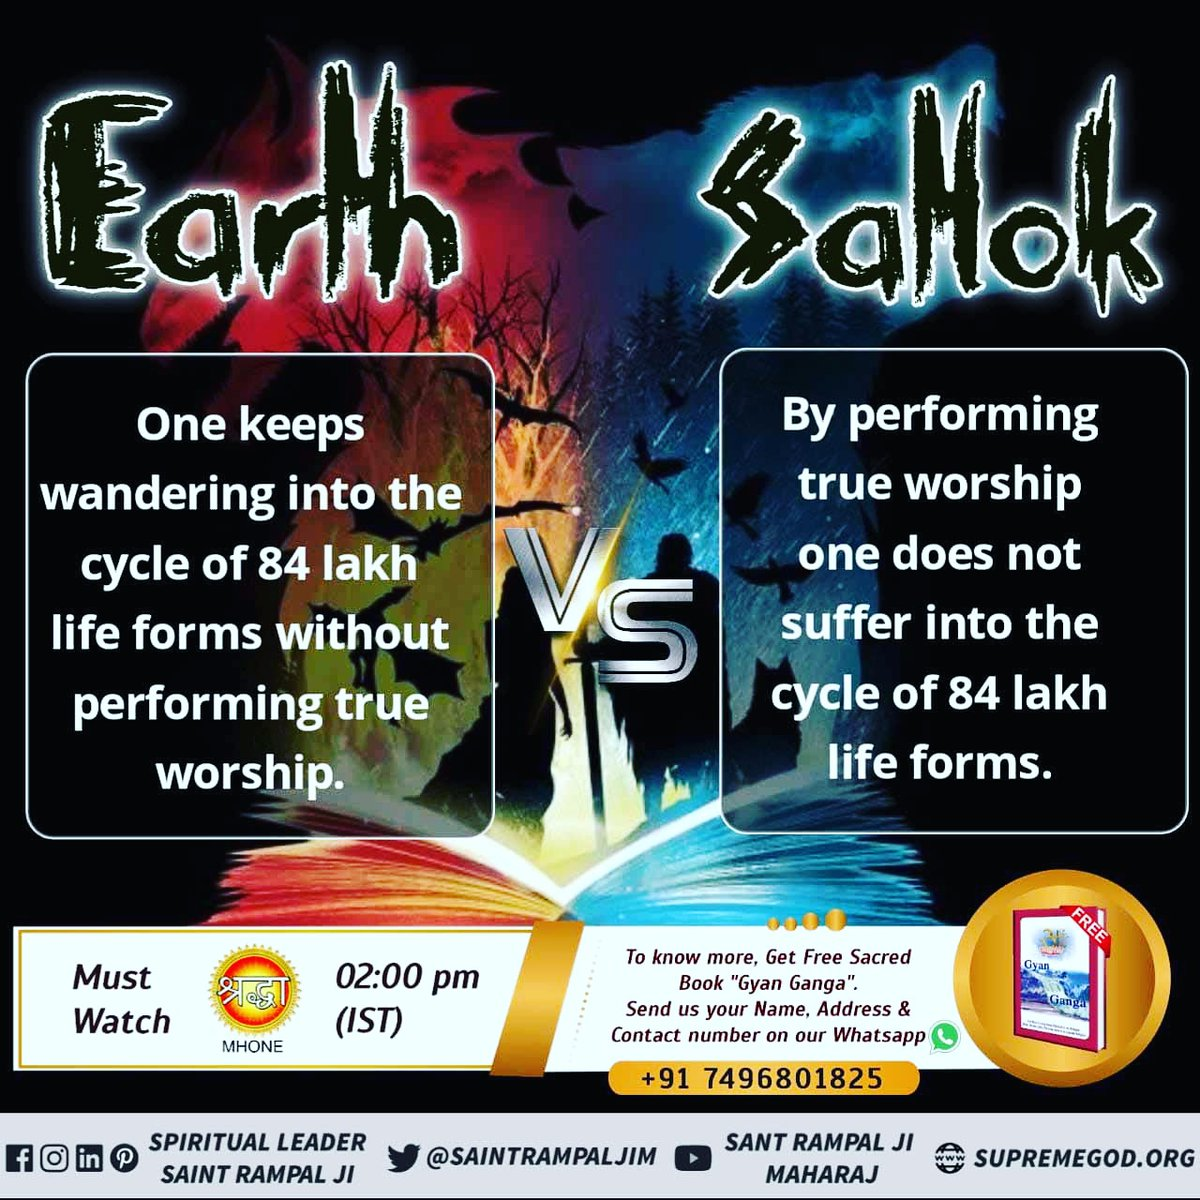 First, one has to leave the customs prevalent in the society. Then only one can reach eternal place Satlok and can get rid of the cycles of death and birth. @SaintRampalJiM Visit Satlok Ashram YouTube Channel #FridayMotivation